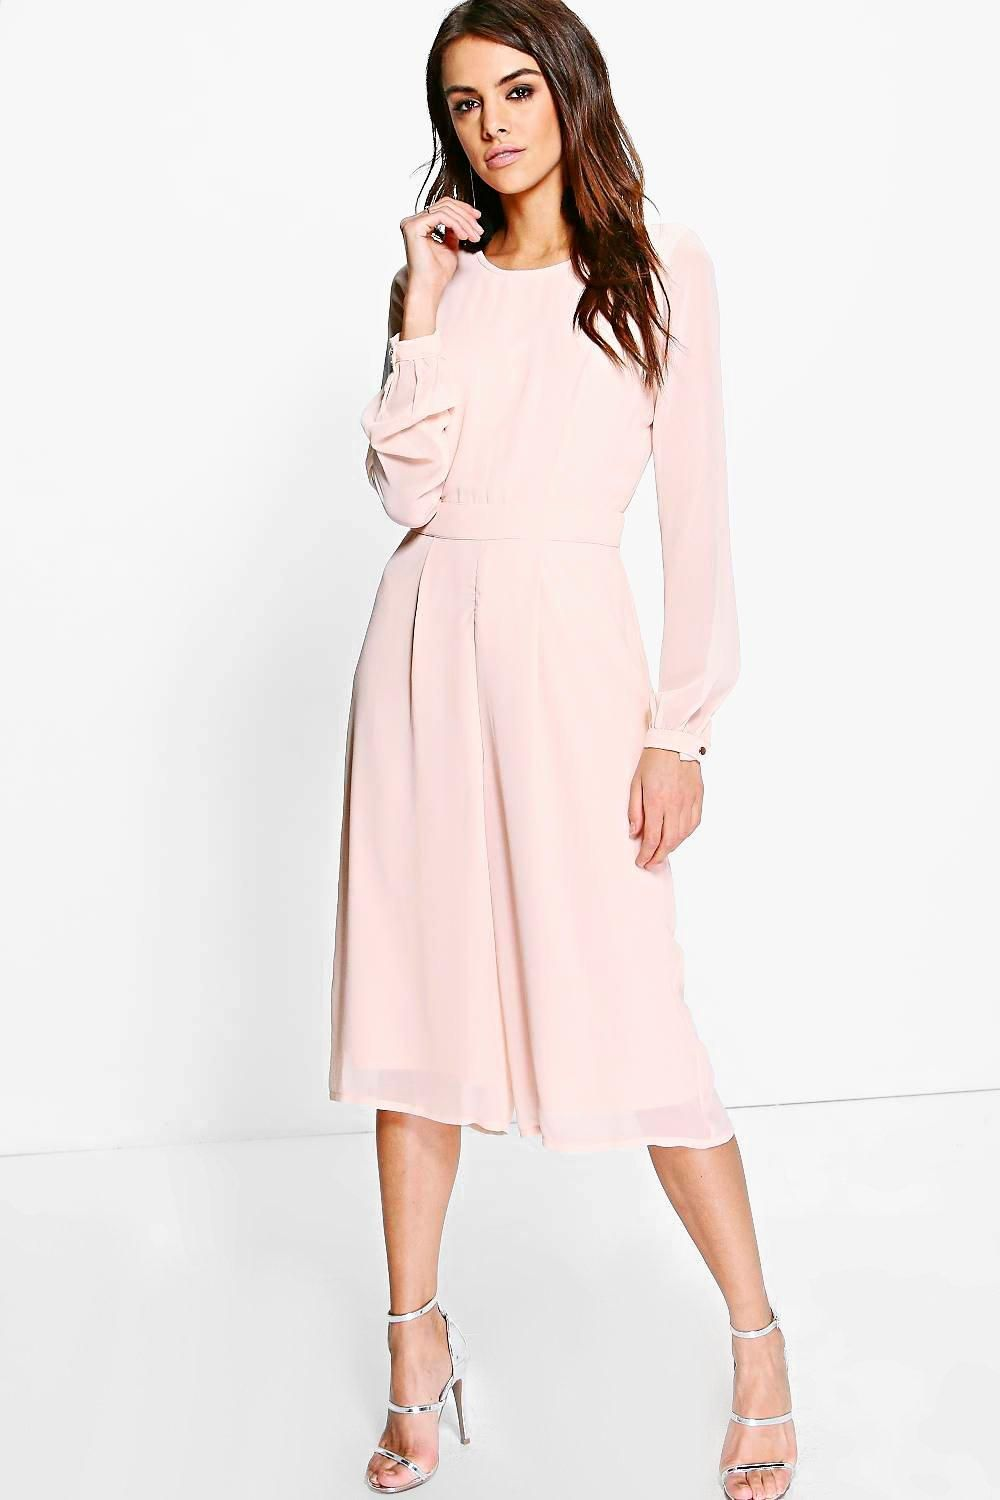 85a4ec4a4872 Jumpsuits are your day-to-night dress alternative Your 70s style  inspiration starts with a jumpsuit. Take your new season style up a notch  in a wide leg ...